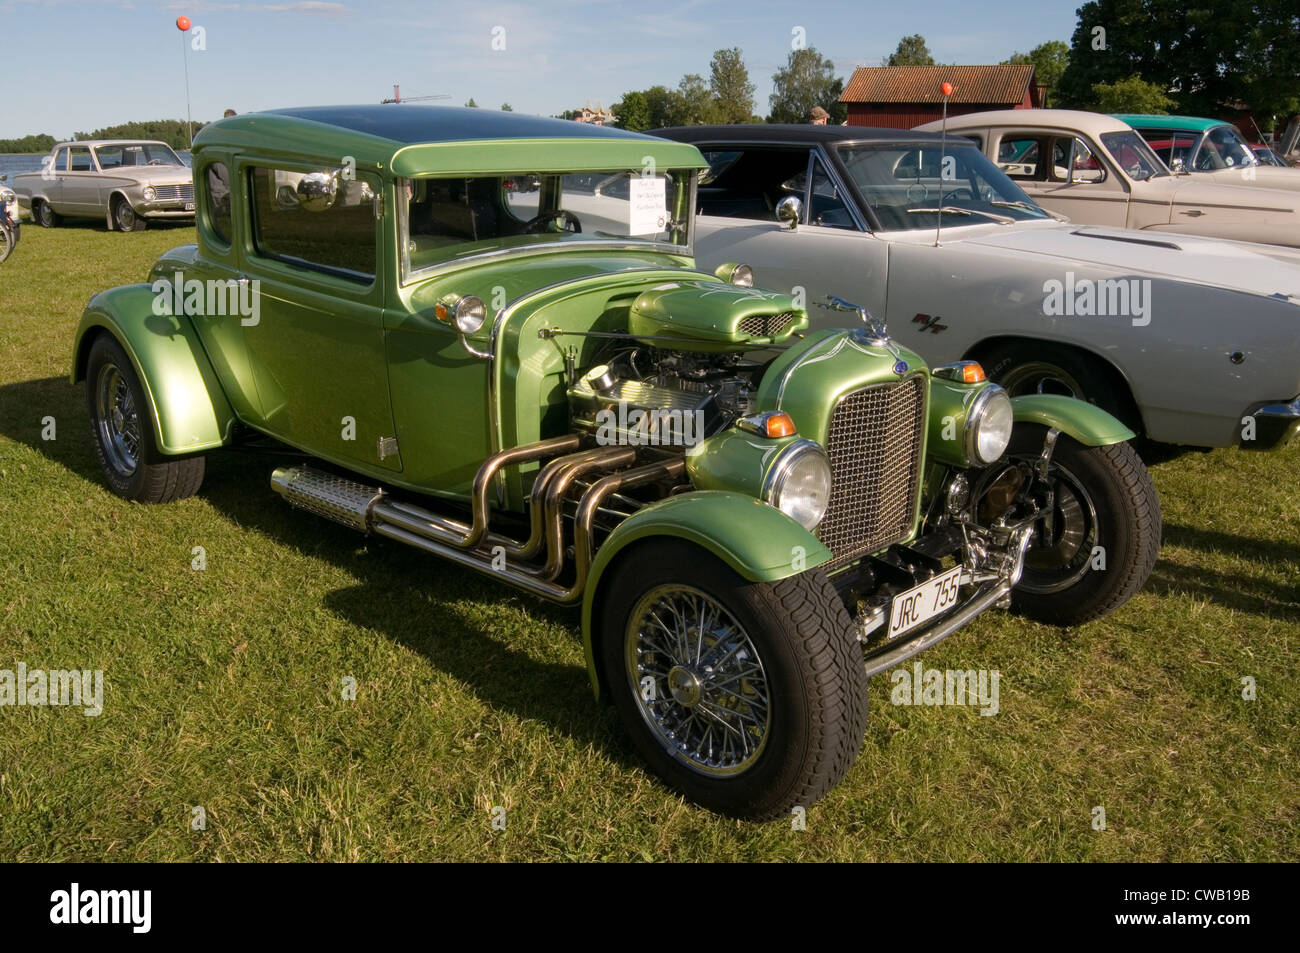 hot rod rods custom car cars customized model a ford. Black Bedroom Furniture Sets. Home Design Ideas